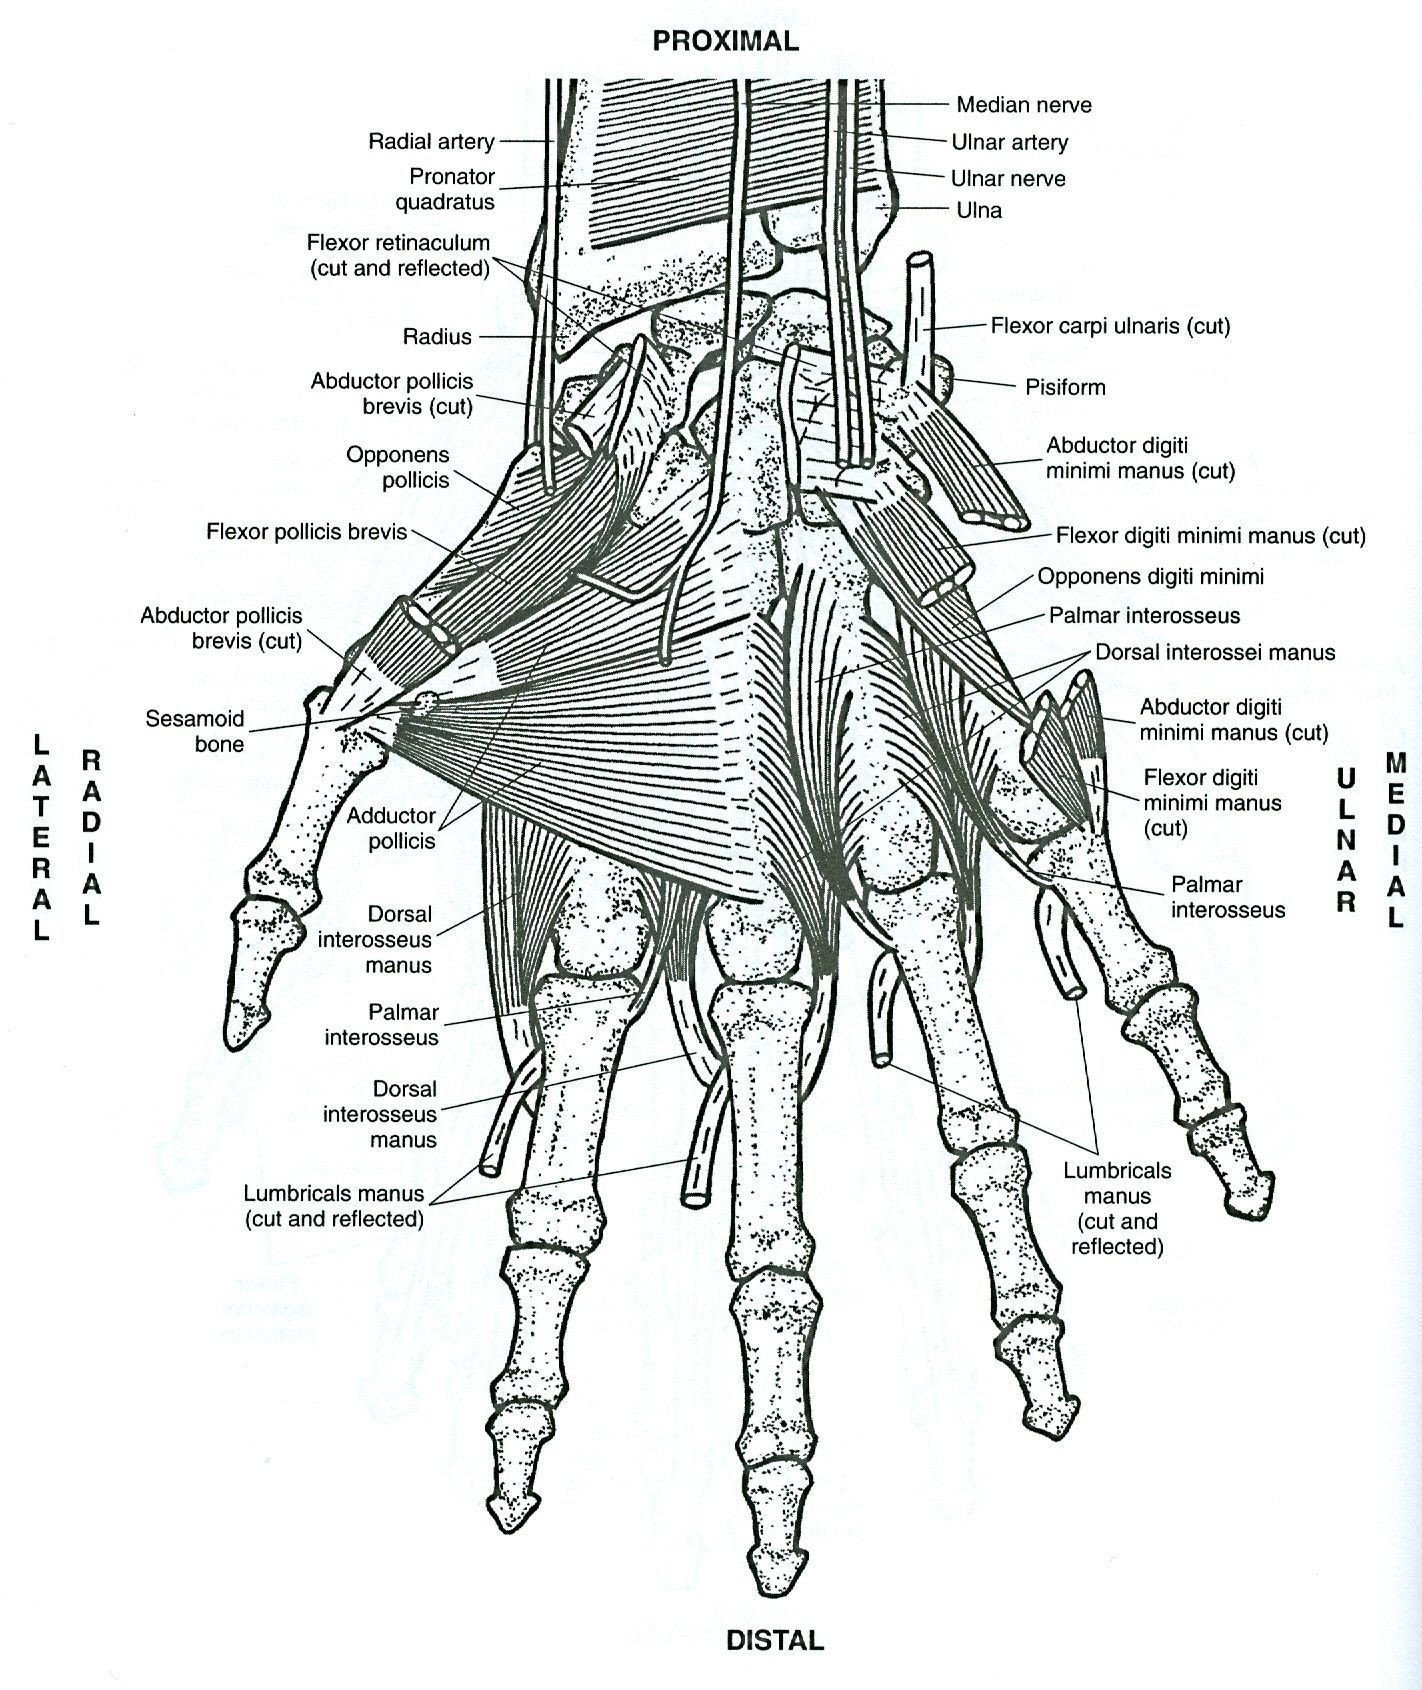 College Anatomy Worksheets Freerintable Anatomy Coloringagesicture Inspirations